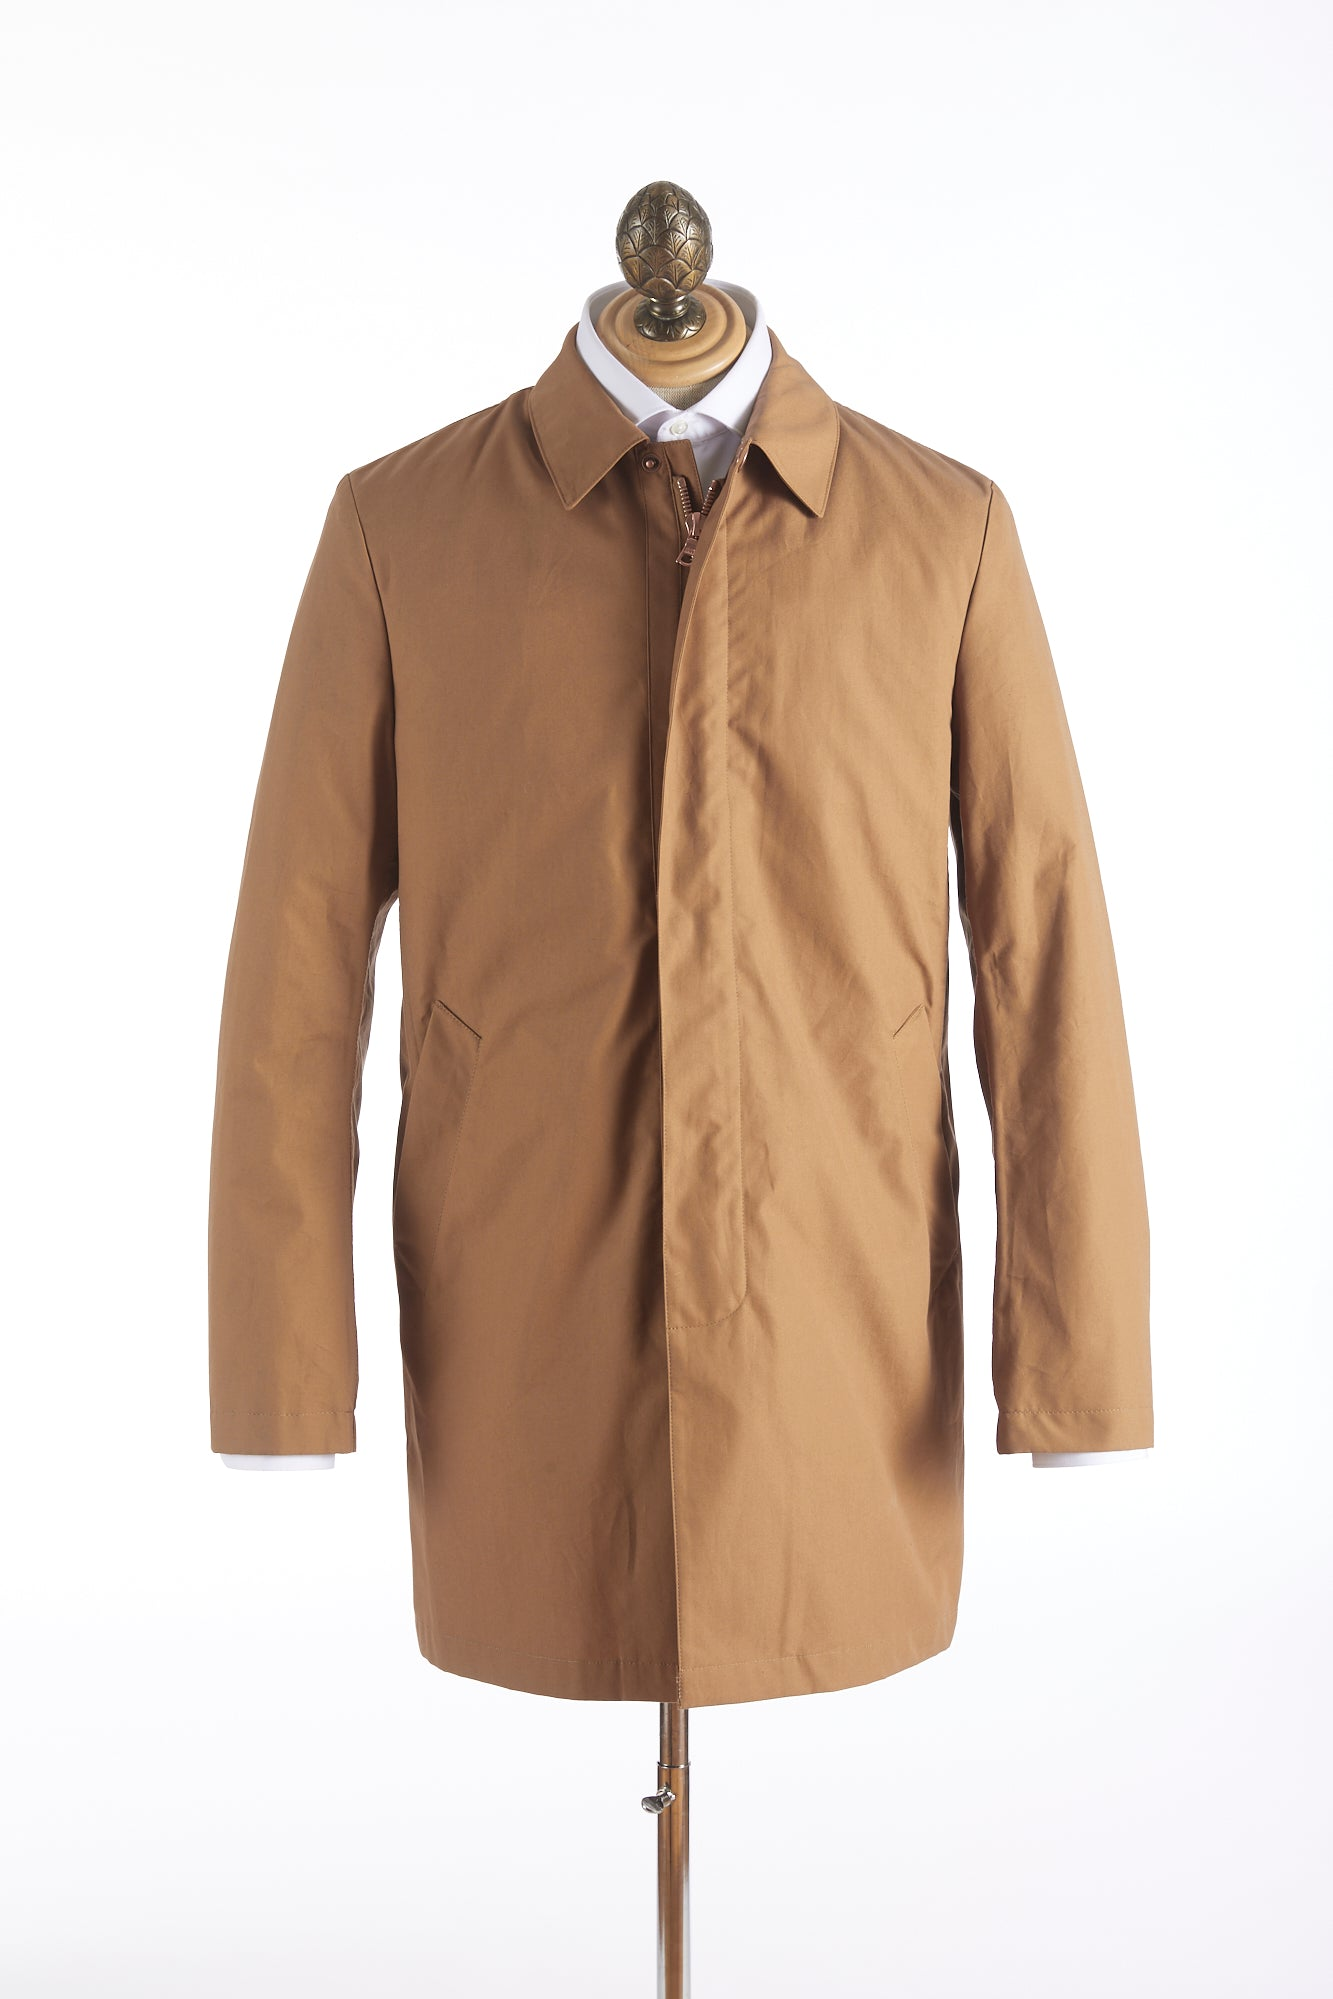 Private White V.C. Tan Cotton Ventile® Unlined Single Breasted Mac Coat